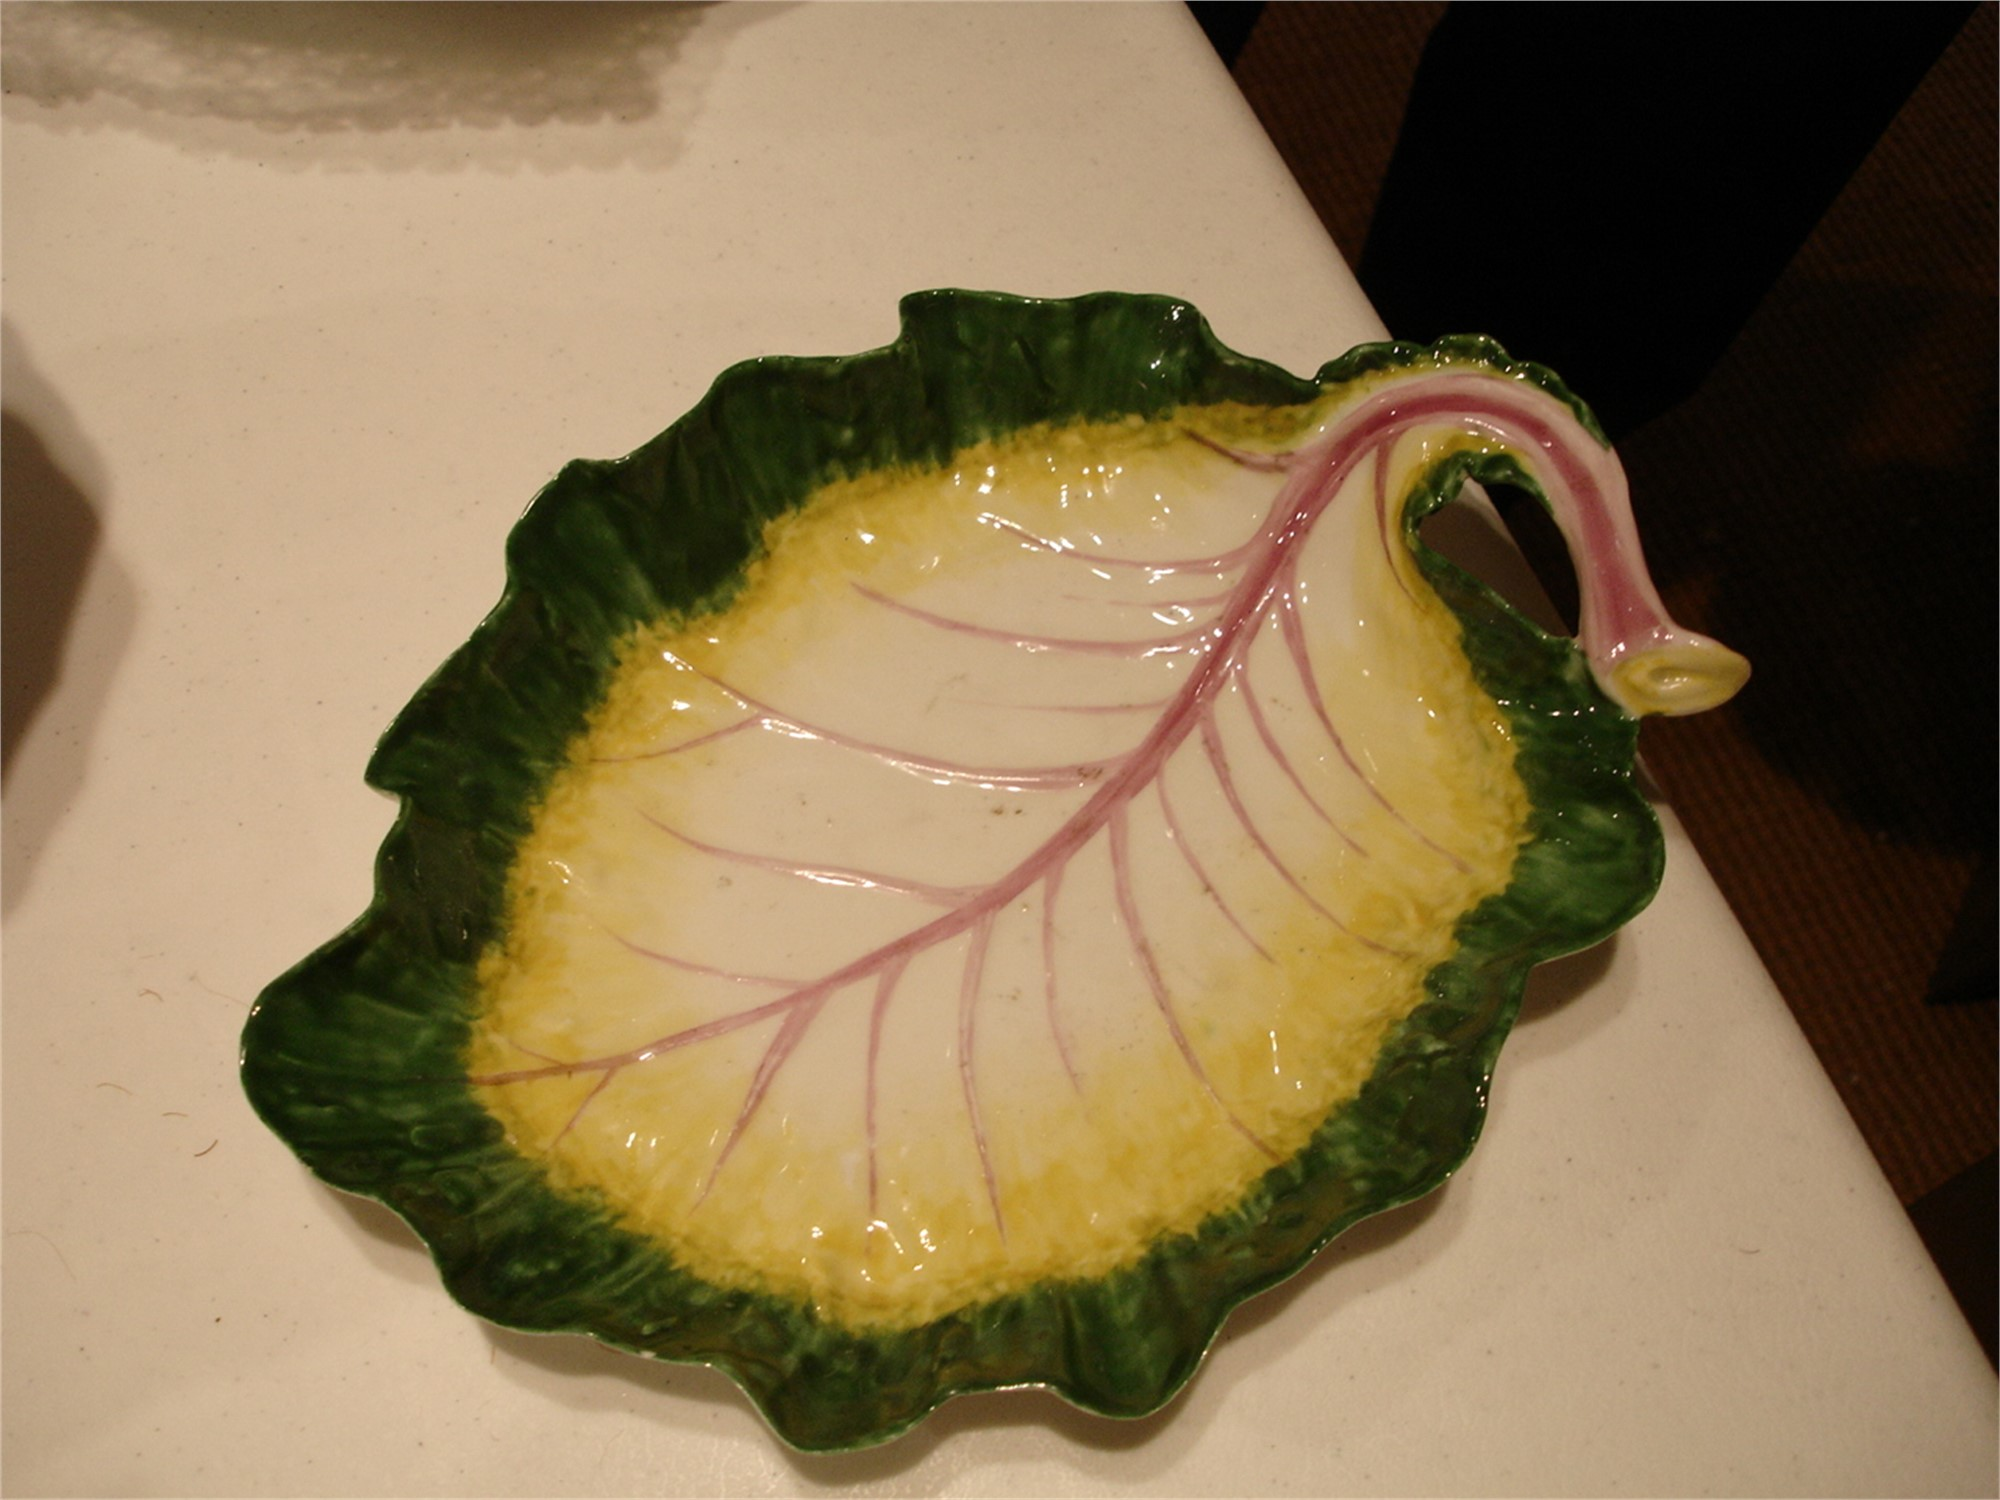 A CHELSEA RED-ANCHOR LEAF-SHAPED DISH